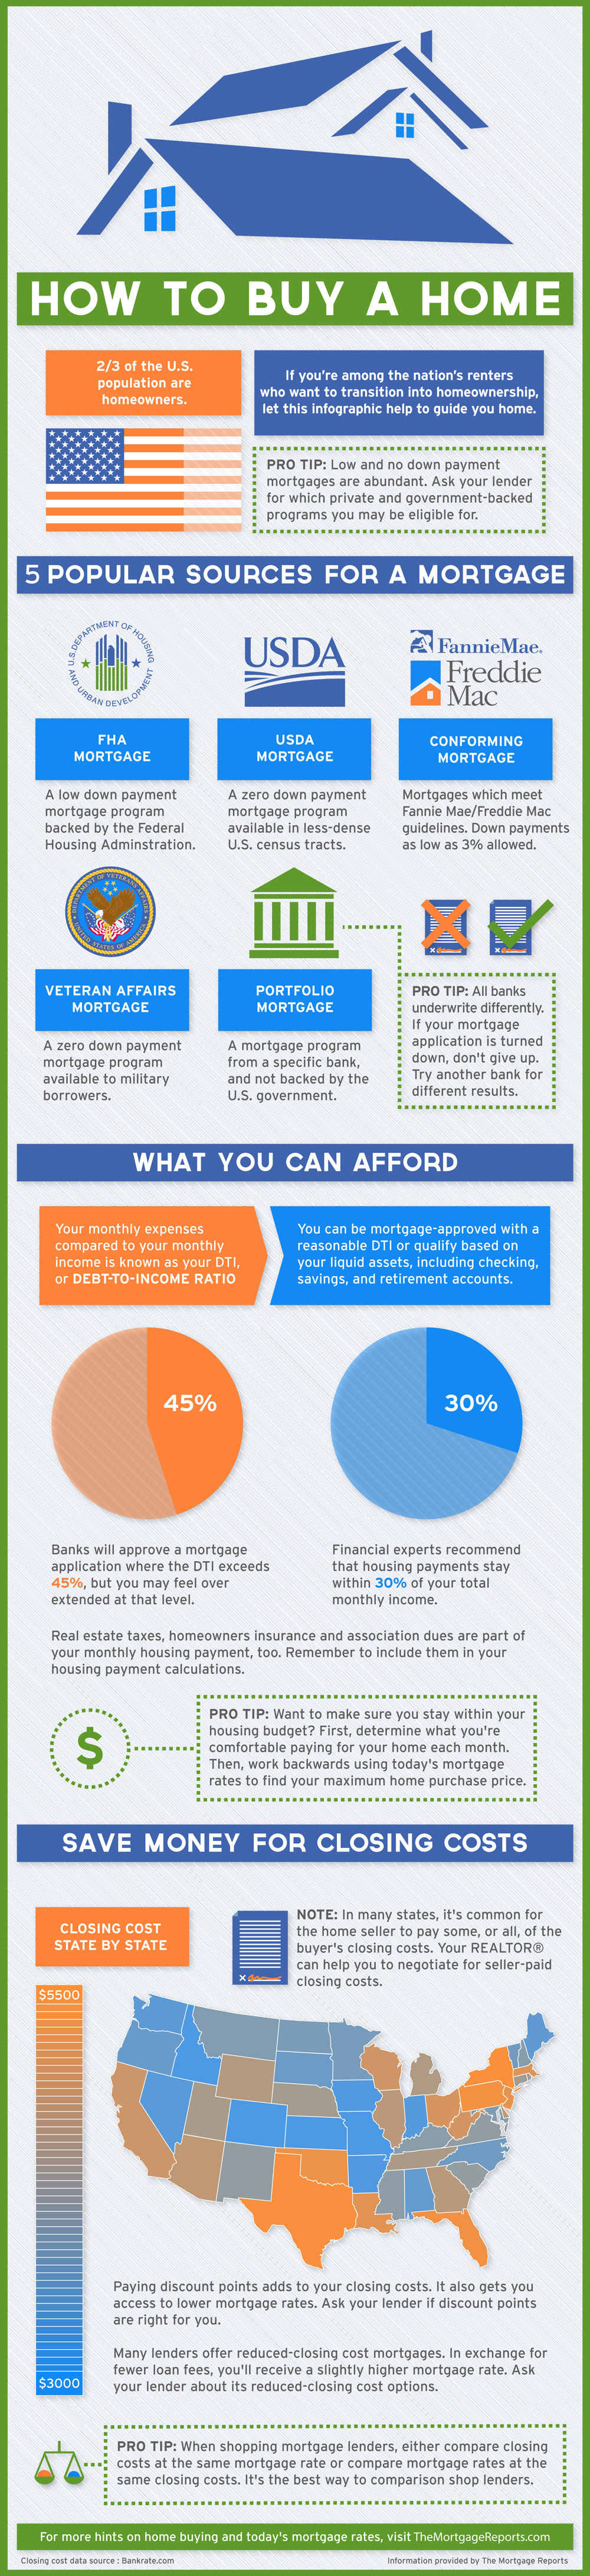 Guide to Purchasing a Home